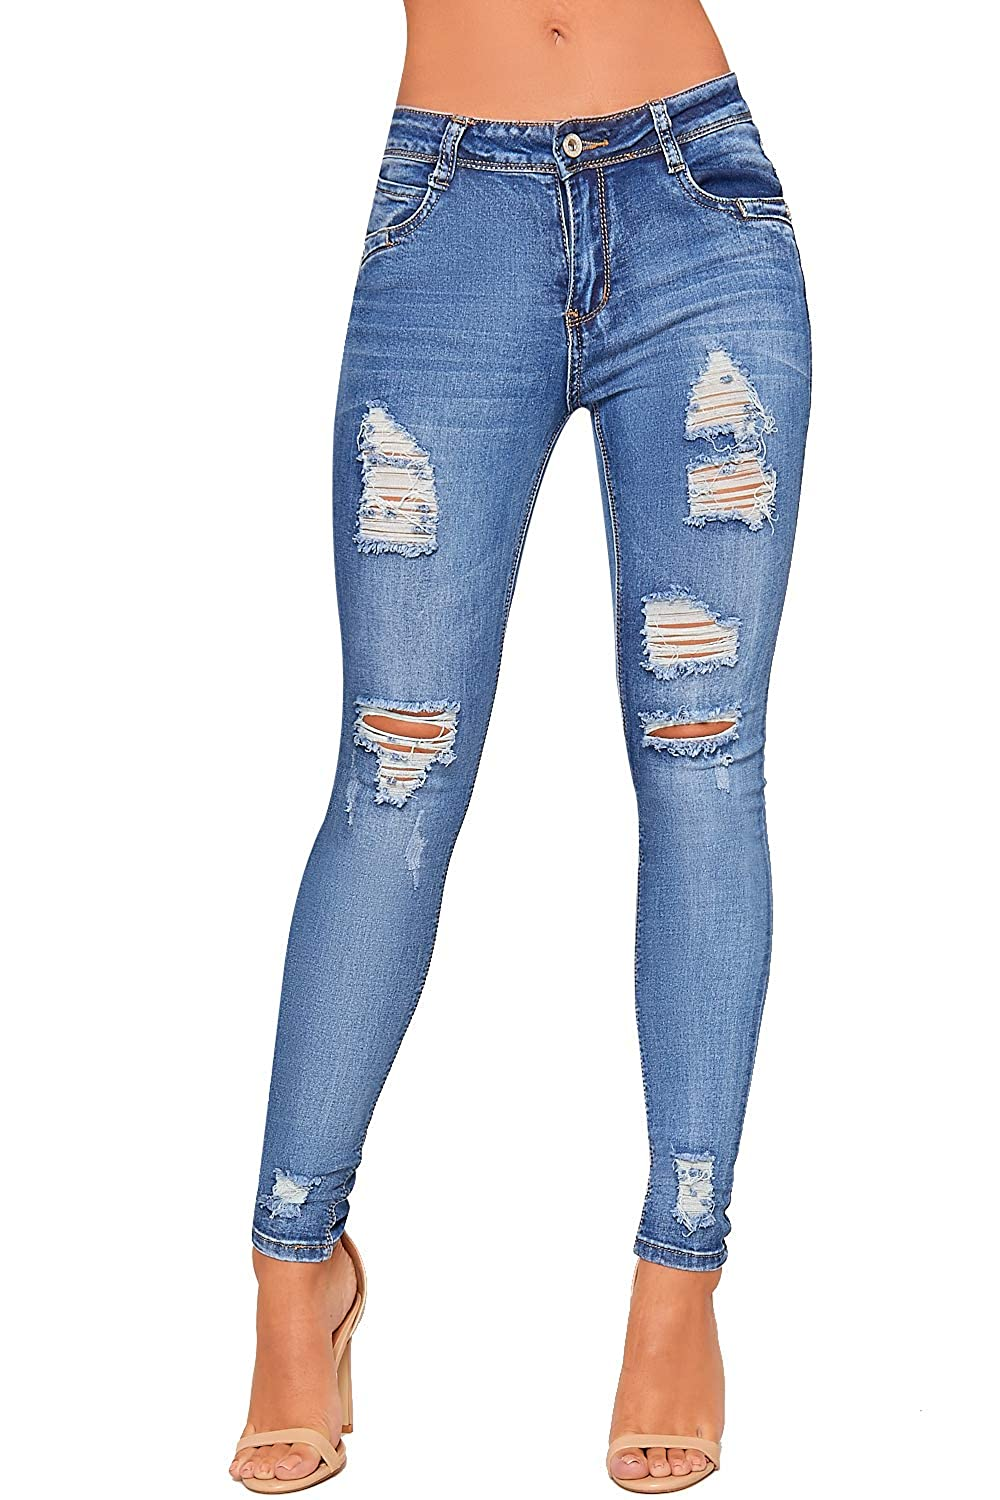 WearAll Women's Ripped Distressed Skinny Leg Denim Jeans Ladies Pants Trousers Stretch 6-14 89576